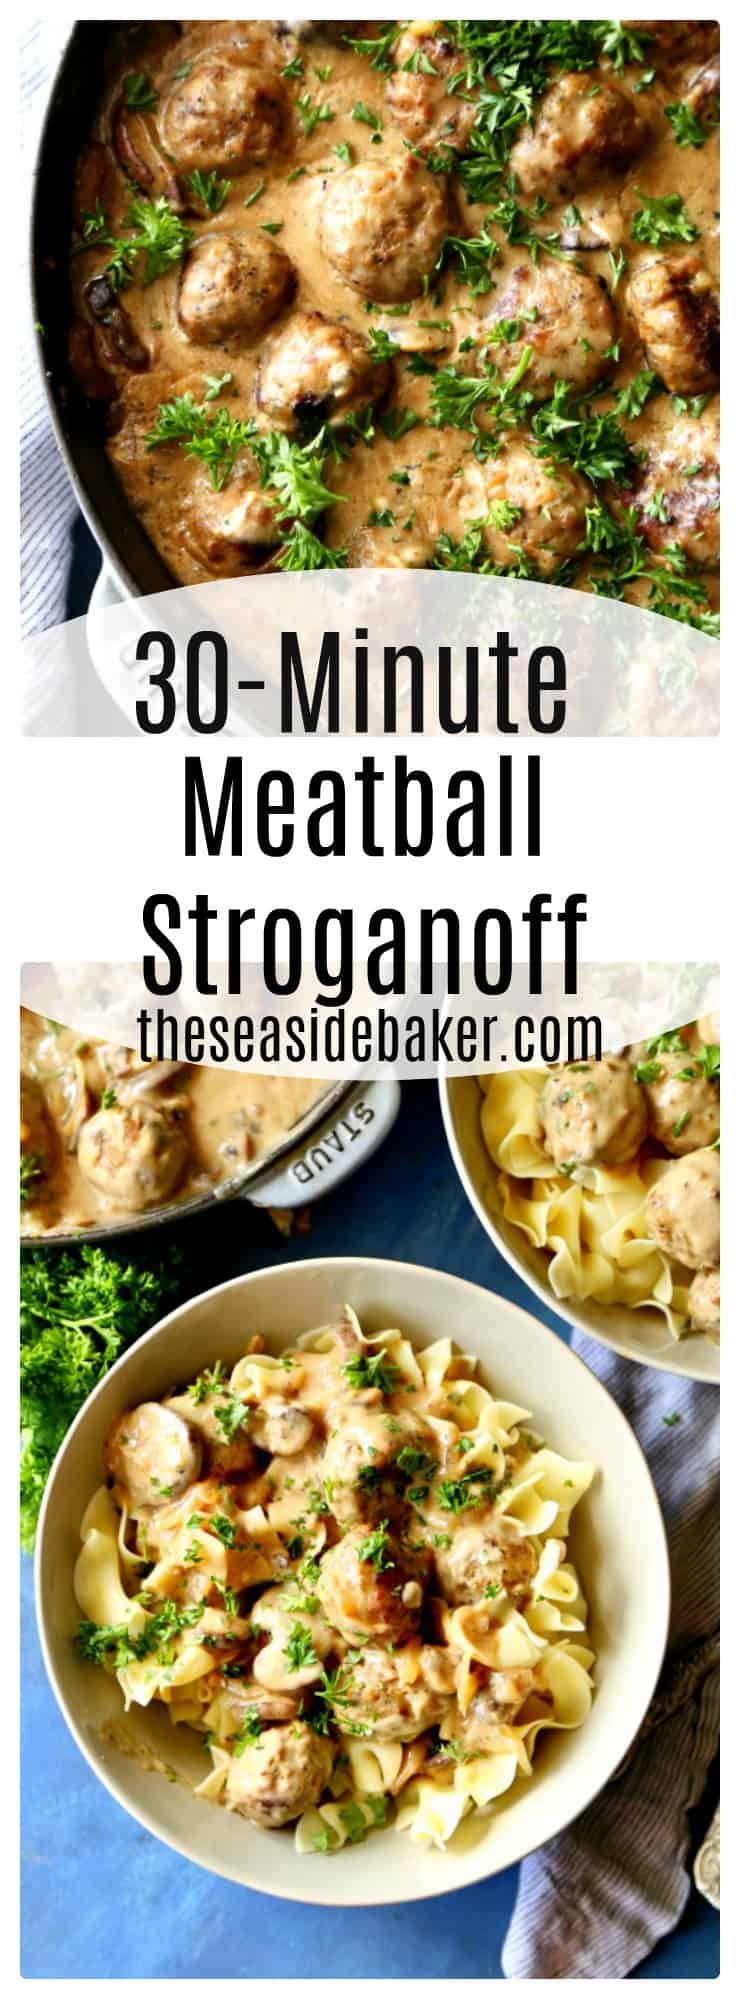 a quick and easy meal perfect for back to school nights. This 30 minute meatball stroganoff is deliciously creamy and rich just like what your mom used to make growing up!